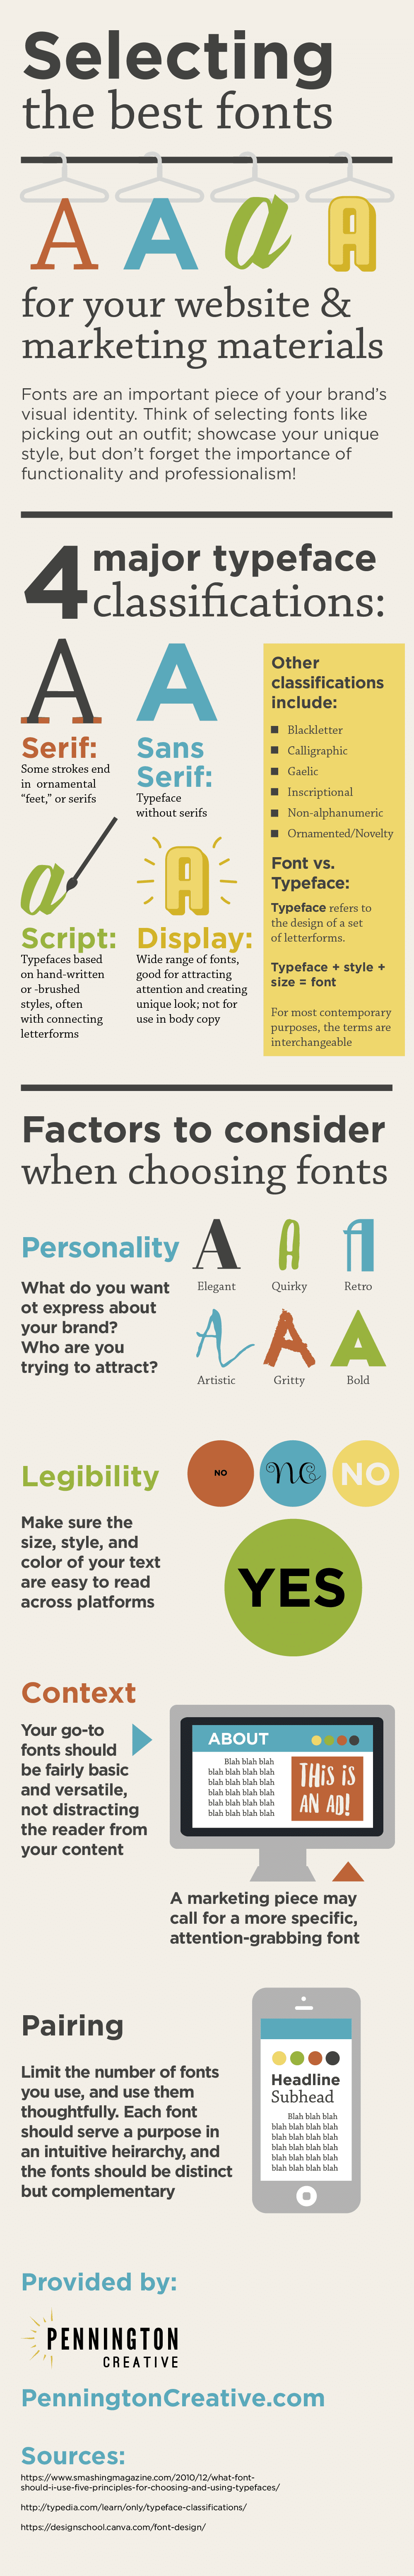 Infographic about selecting fonts for your business materials.